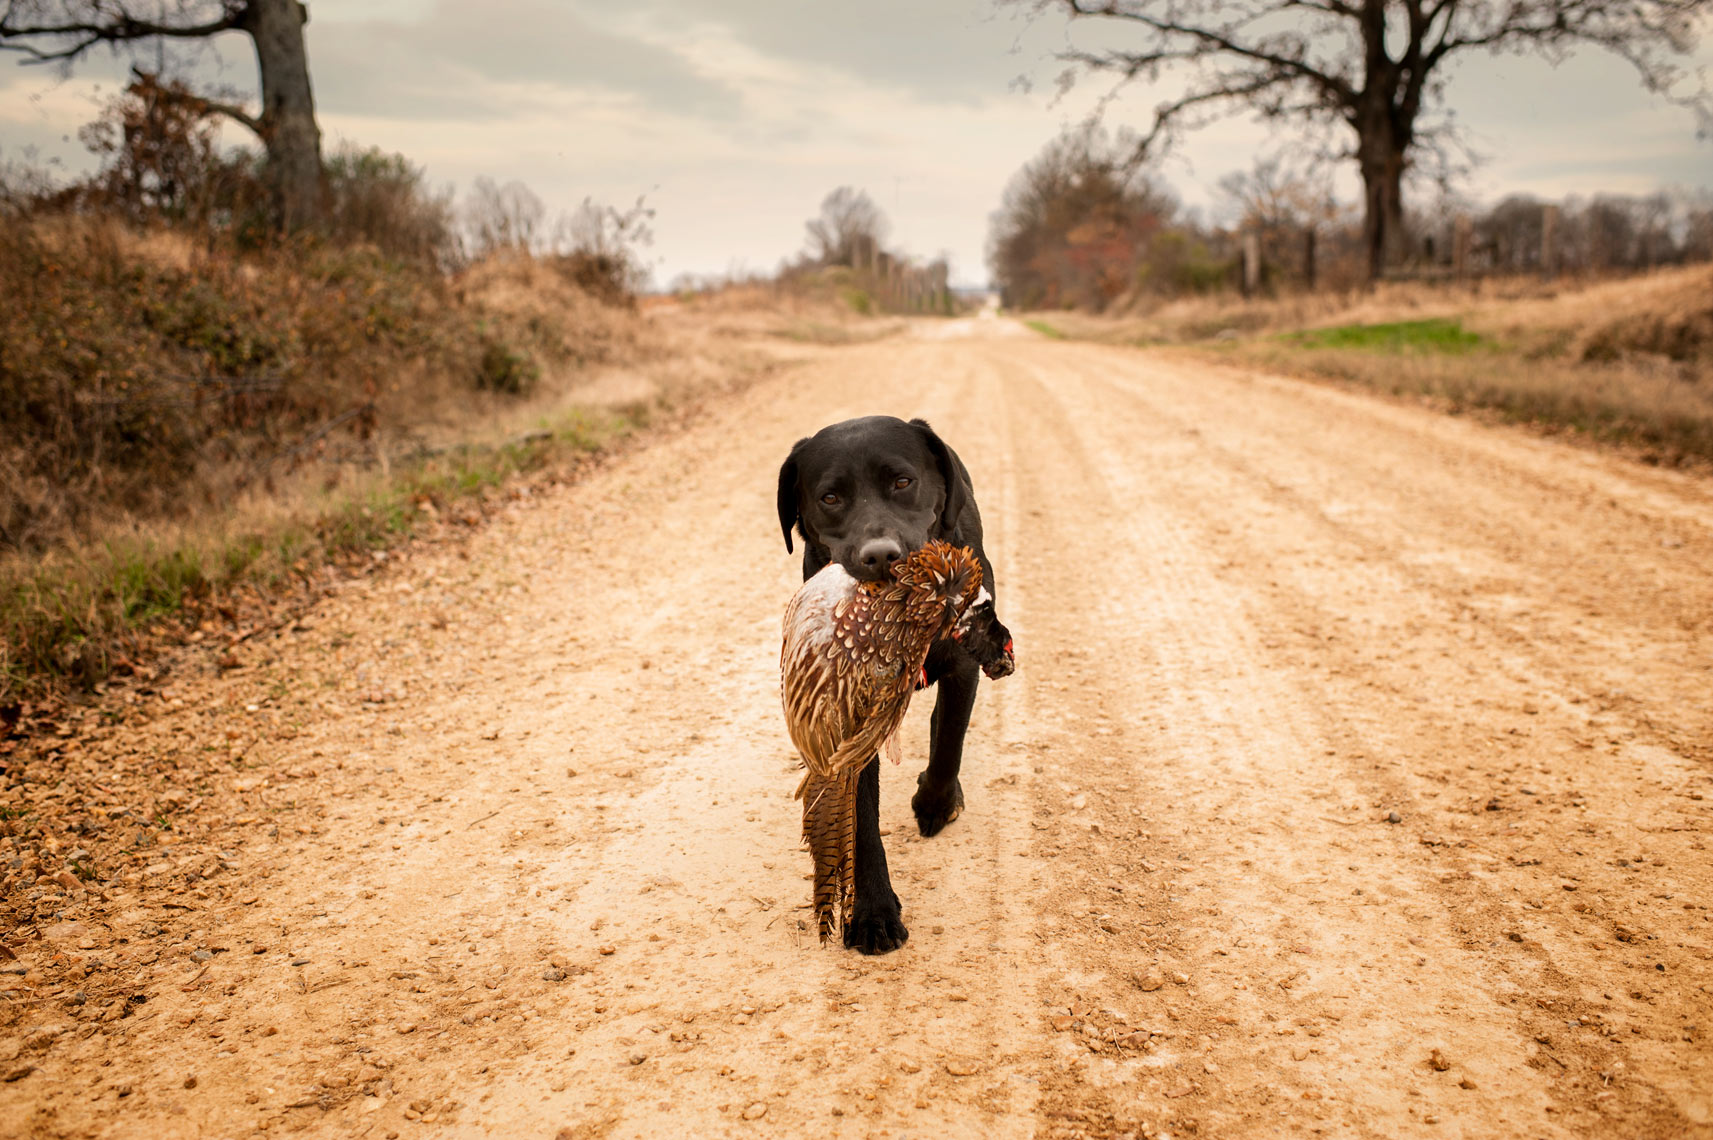 Benna walks back with the pheasant in her mouth